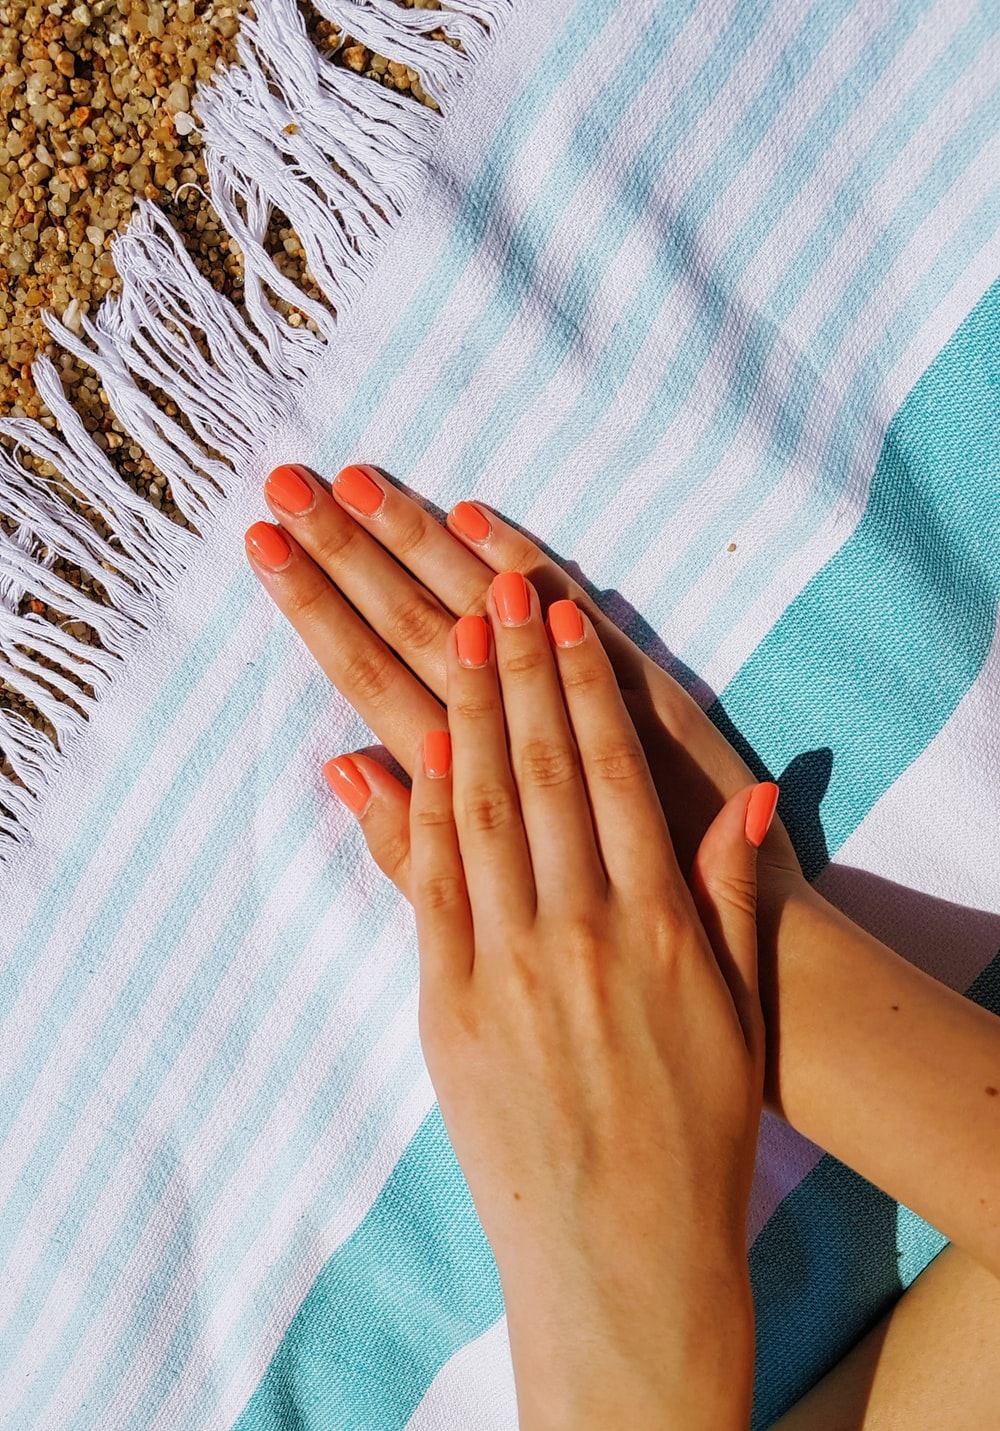 person's hands putting on towel